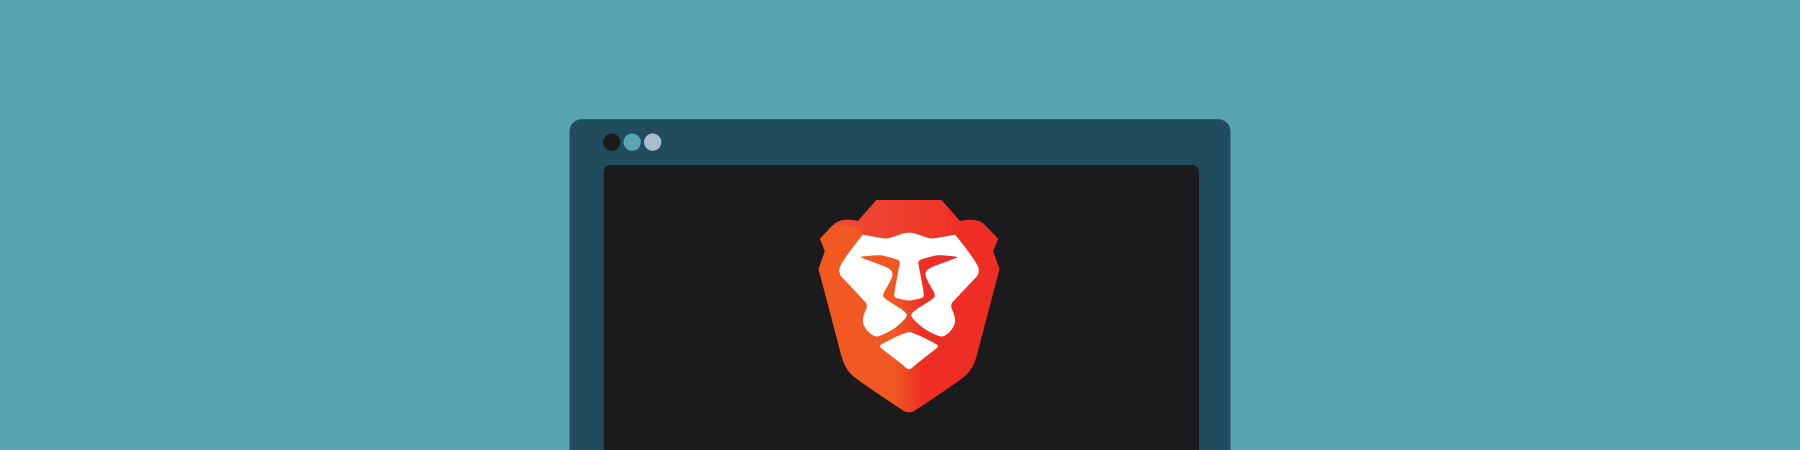 A Brave New Web: Will the Brave Browser Change Digital Marketing and Advertising?